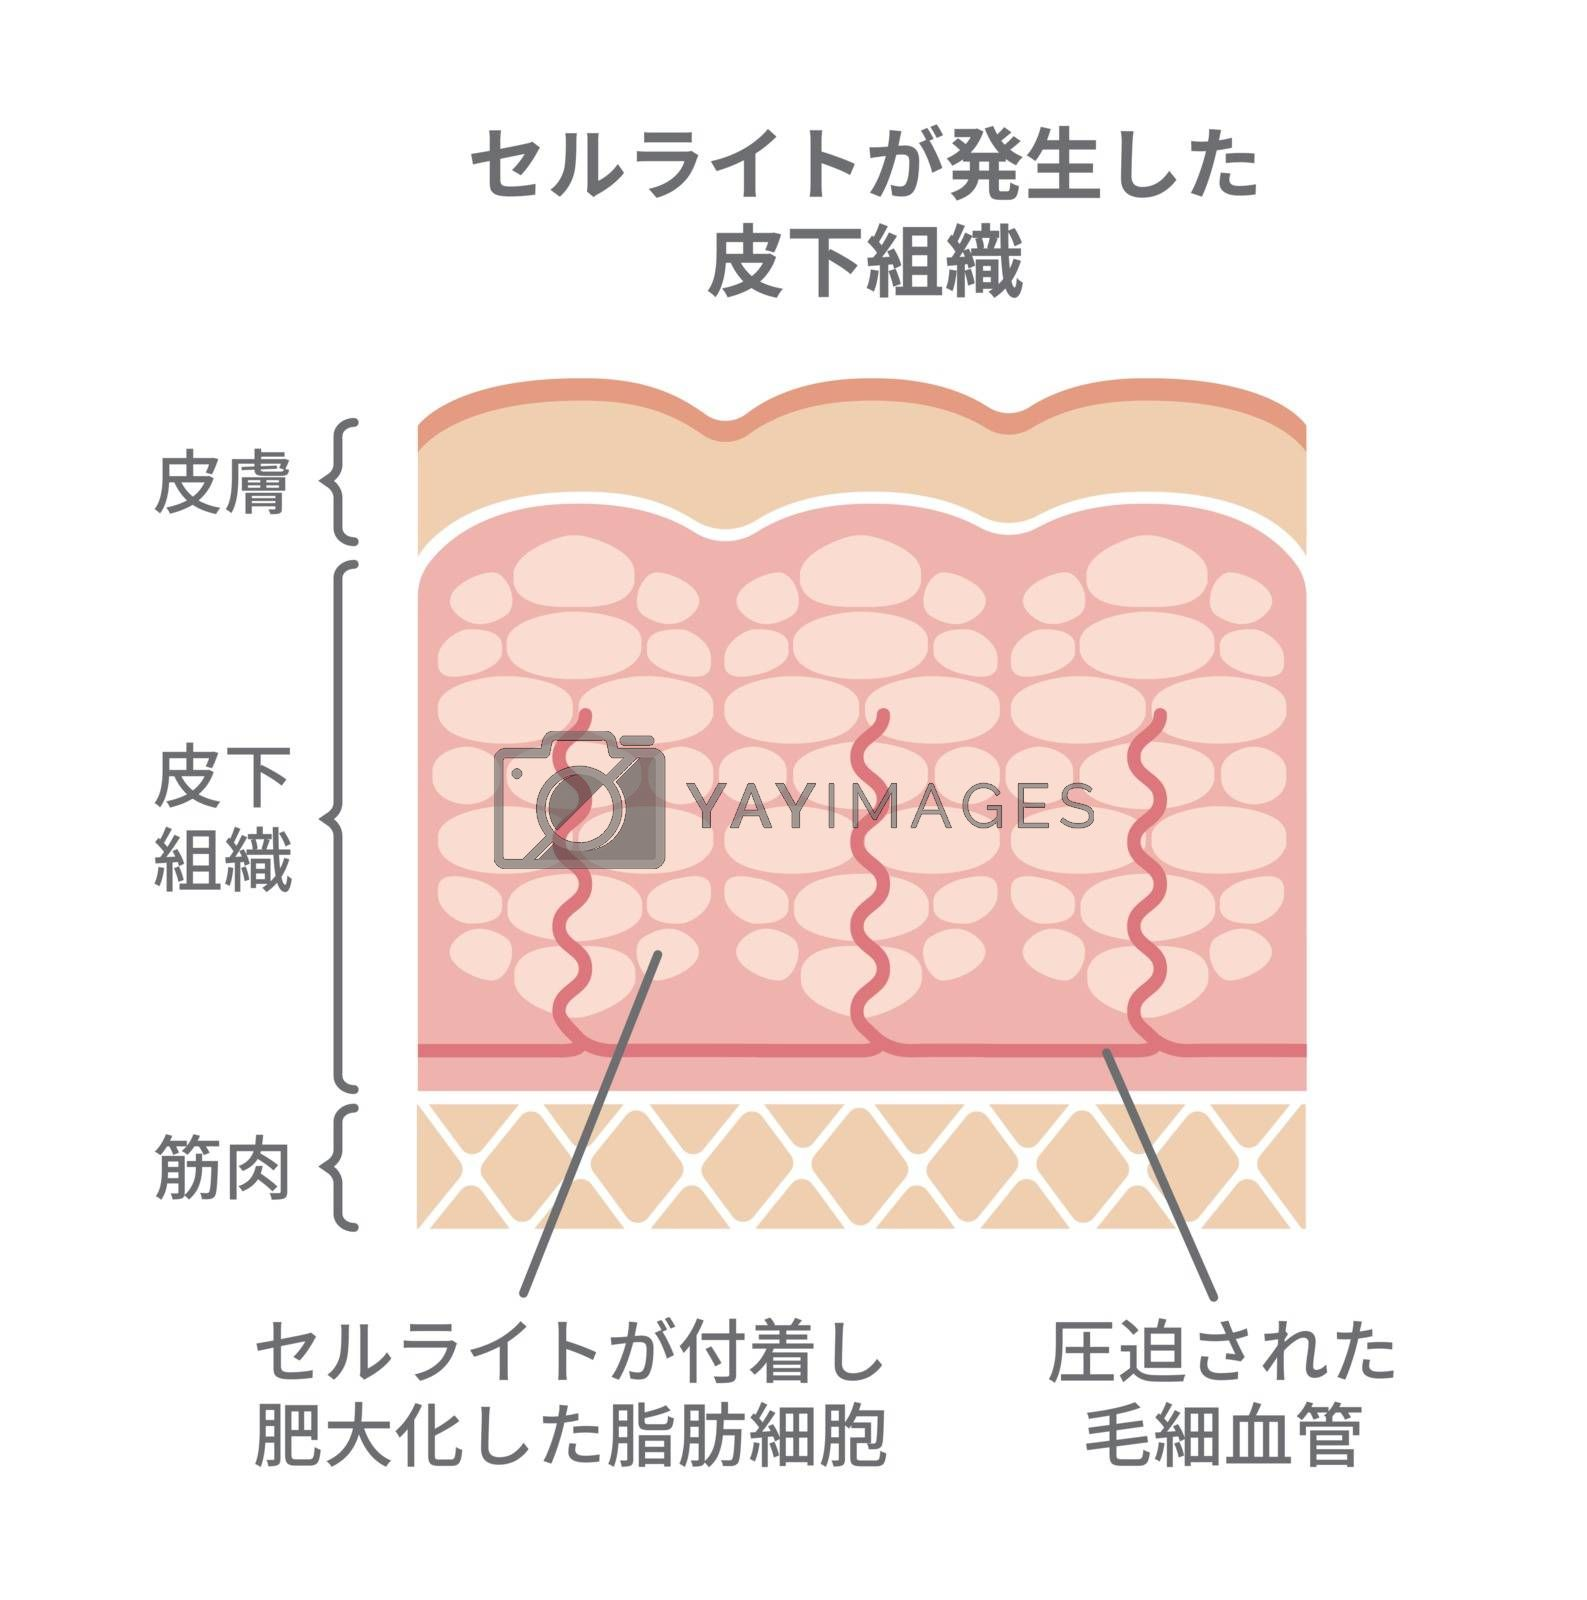 Royalty free image of Cellulite's skin illustration by barks